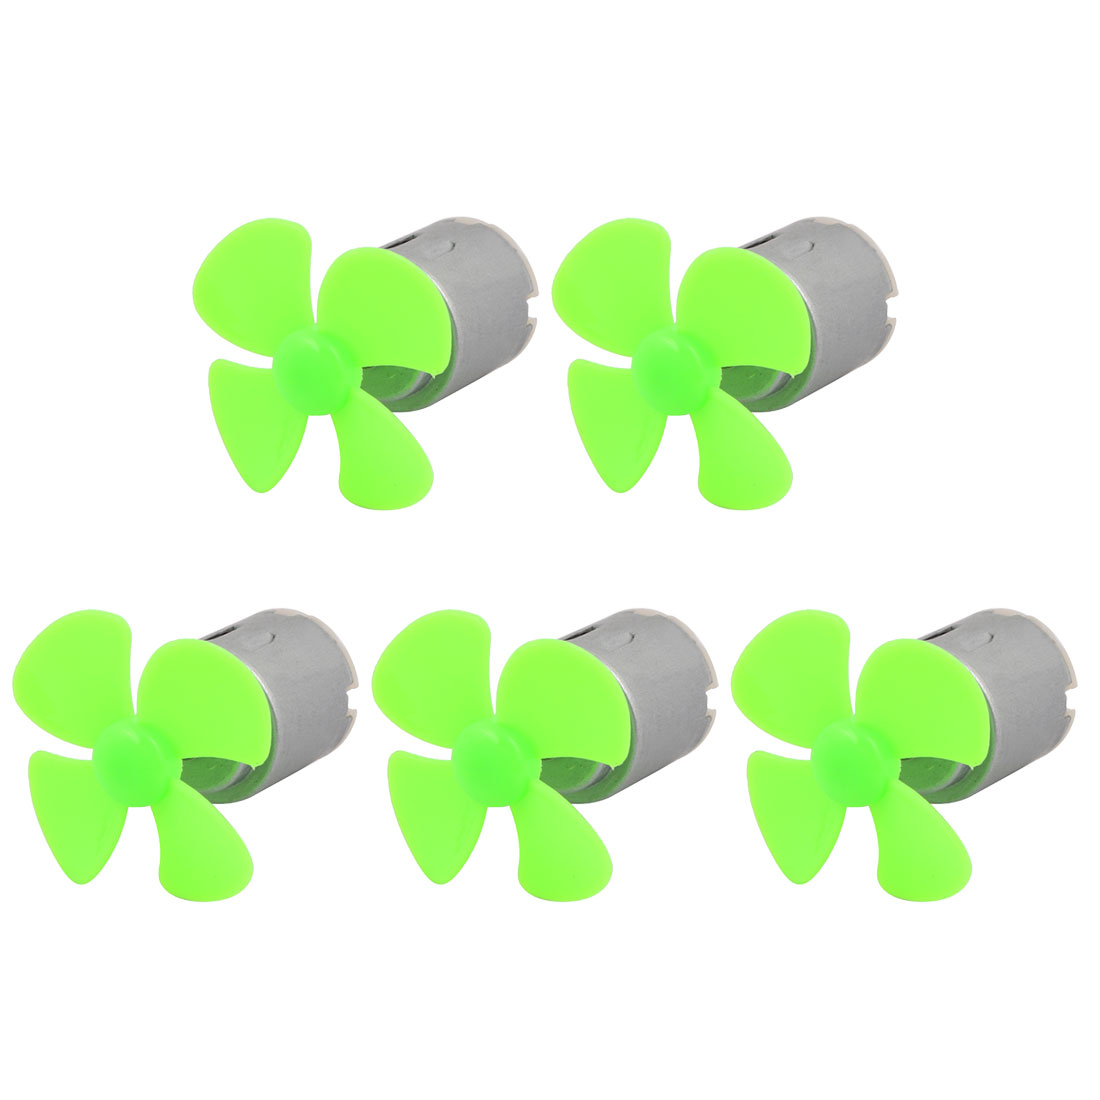 5pcs DC 3V 0.13A 9000RPM Strong Force Motor 4 Vanes 40mm Green Propeller for RC Aircraft